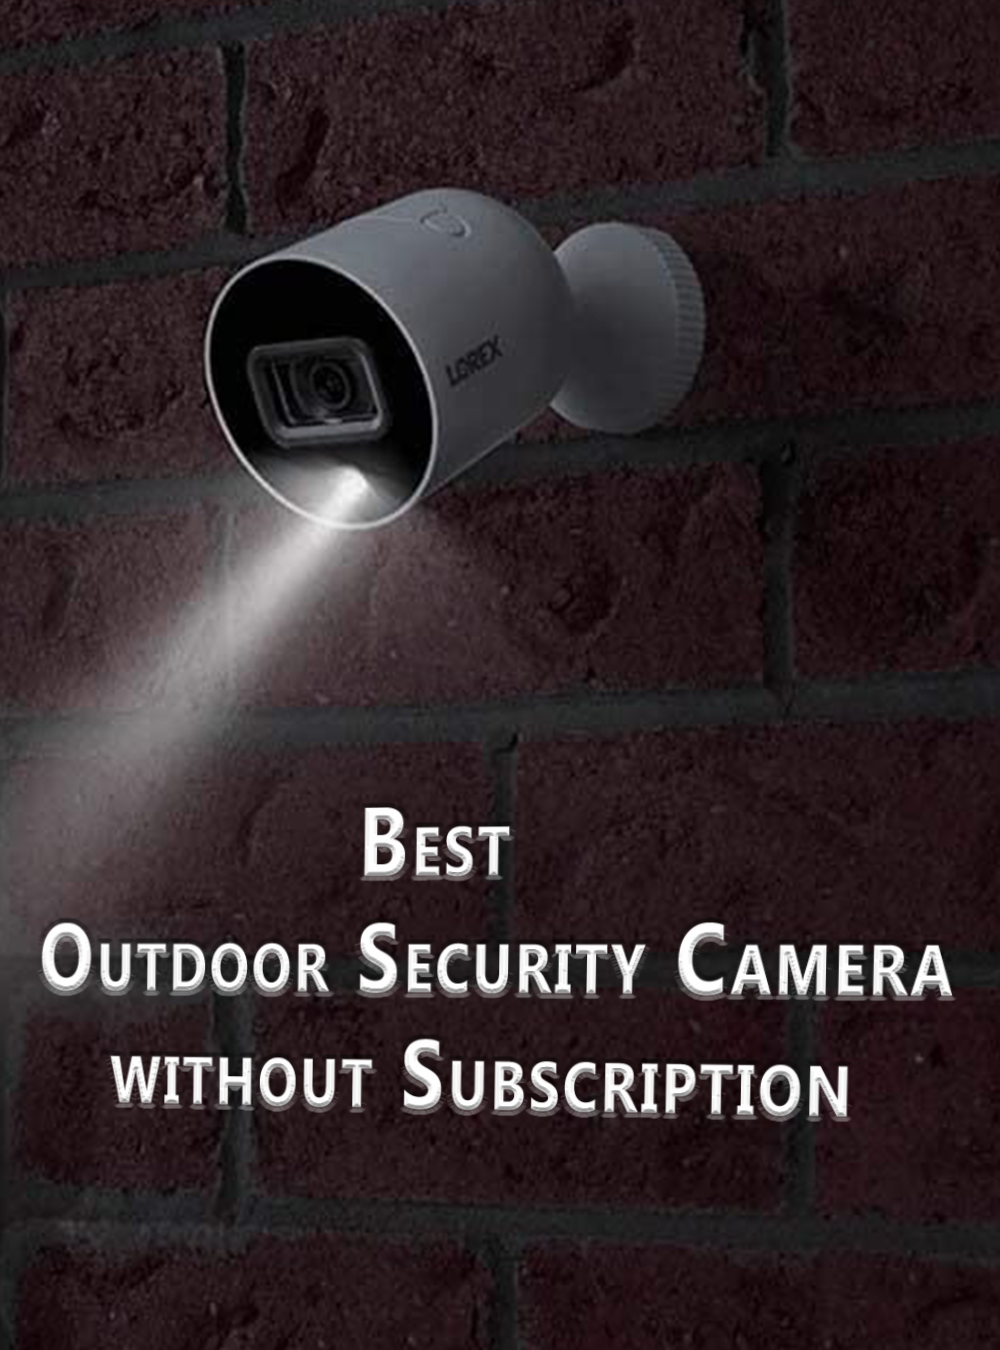 Best Outdoor Security Camera Without Subscription Outdoor Security Camera Security Camera Security Cameras For Home